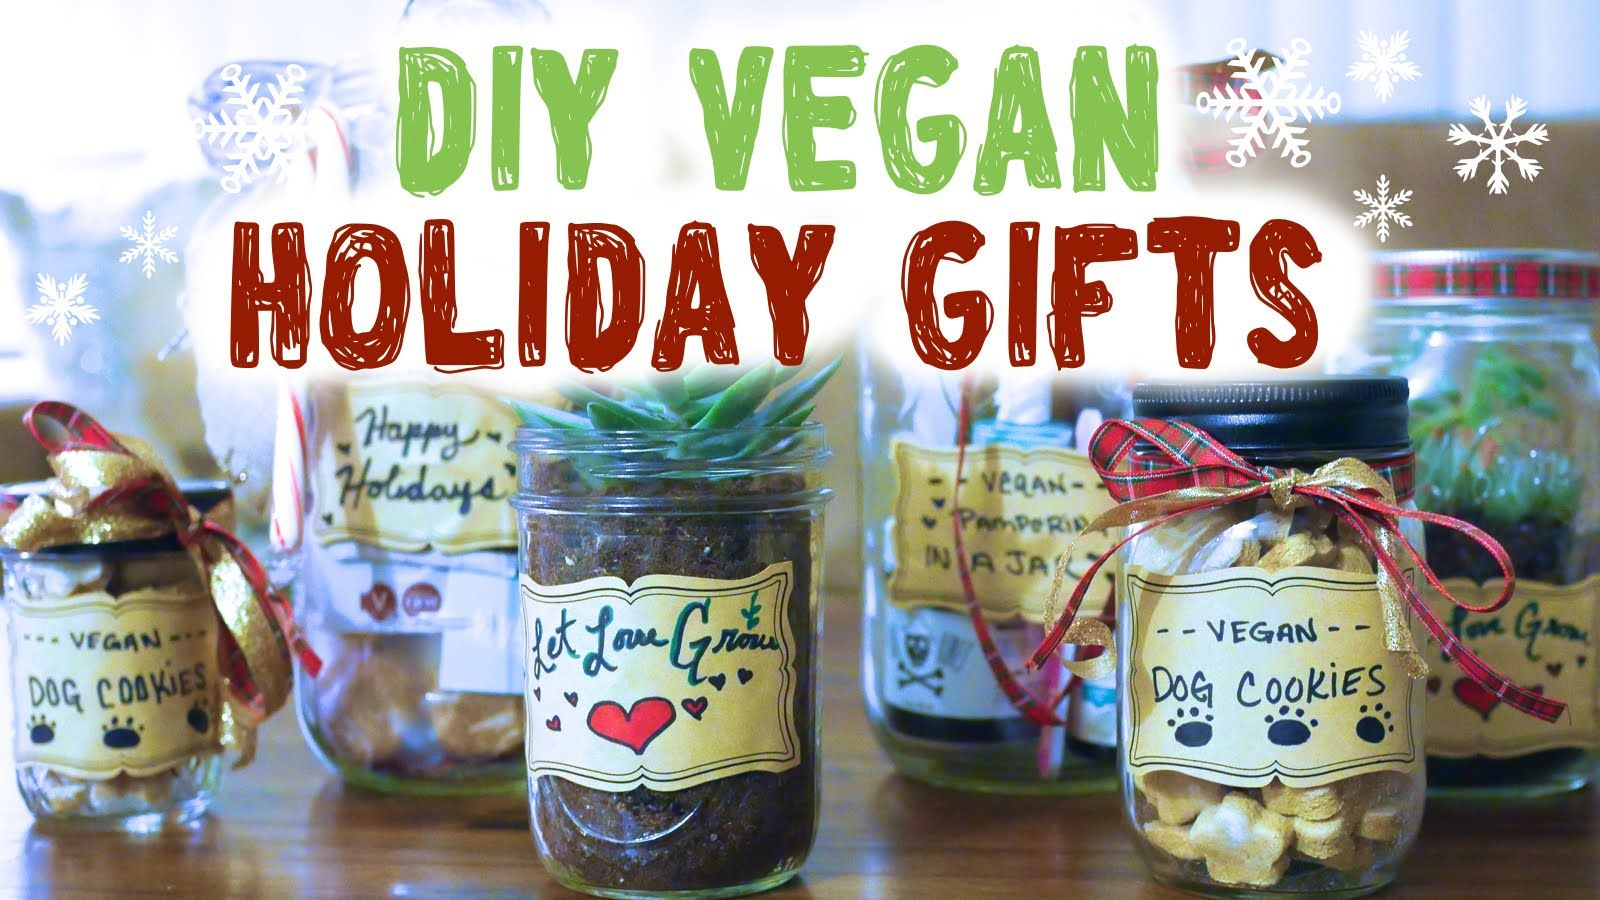 21 vegan gift ideas 2018 for your friends, family, & love (him / her